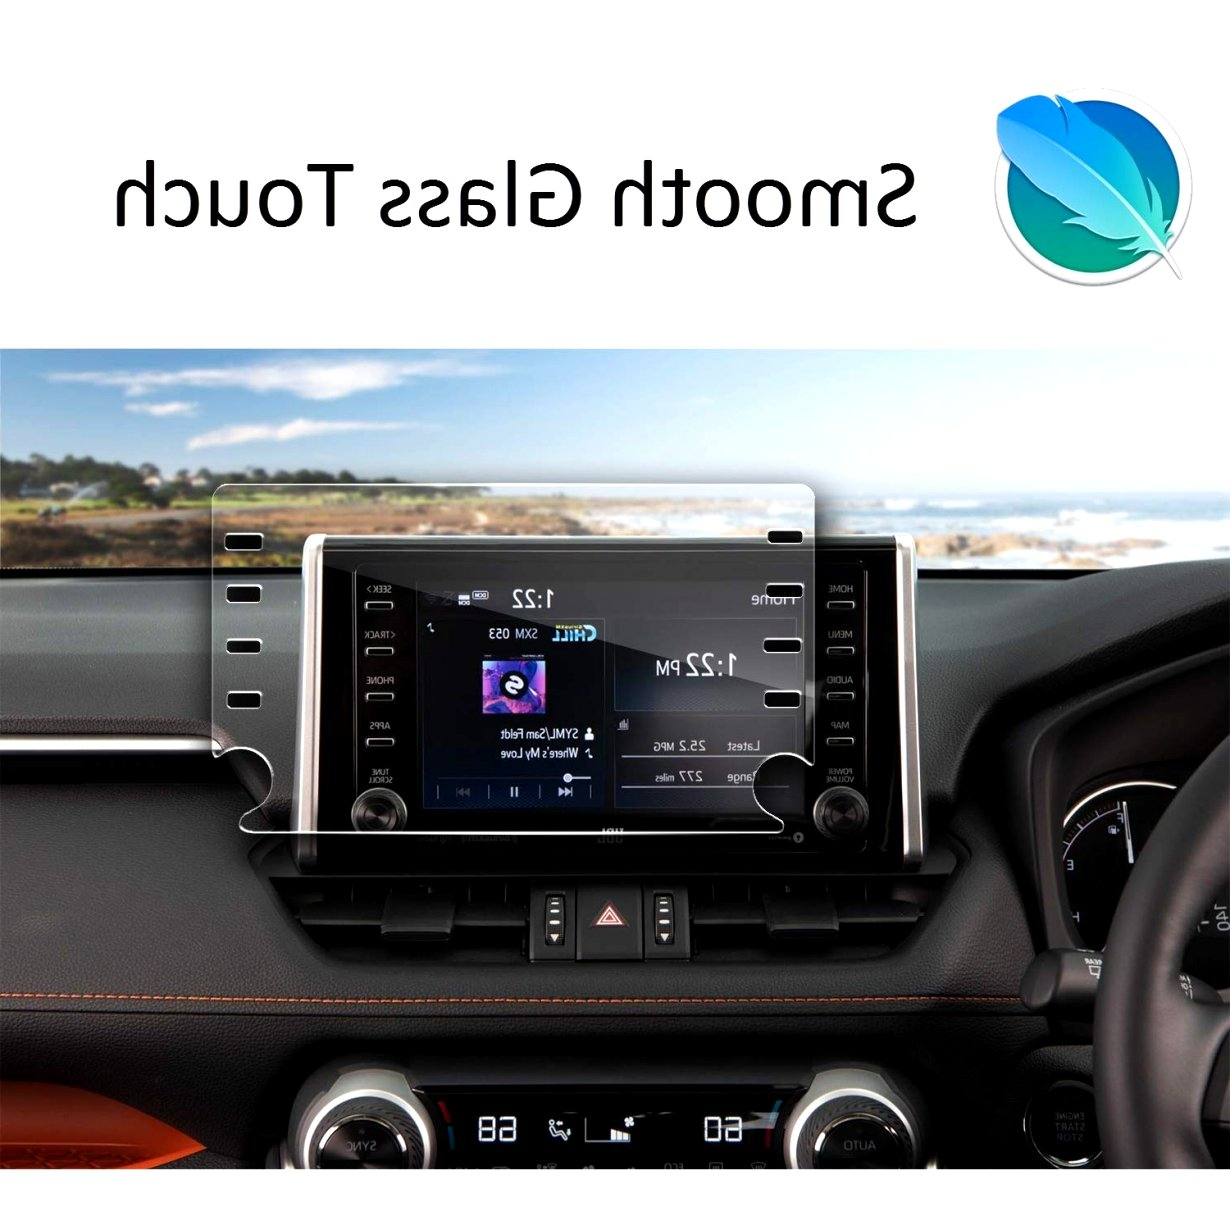 2020 toyota navigation Pictures